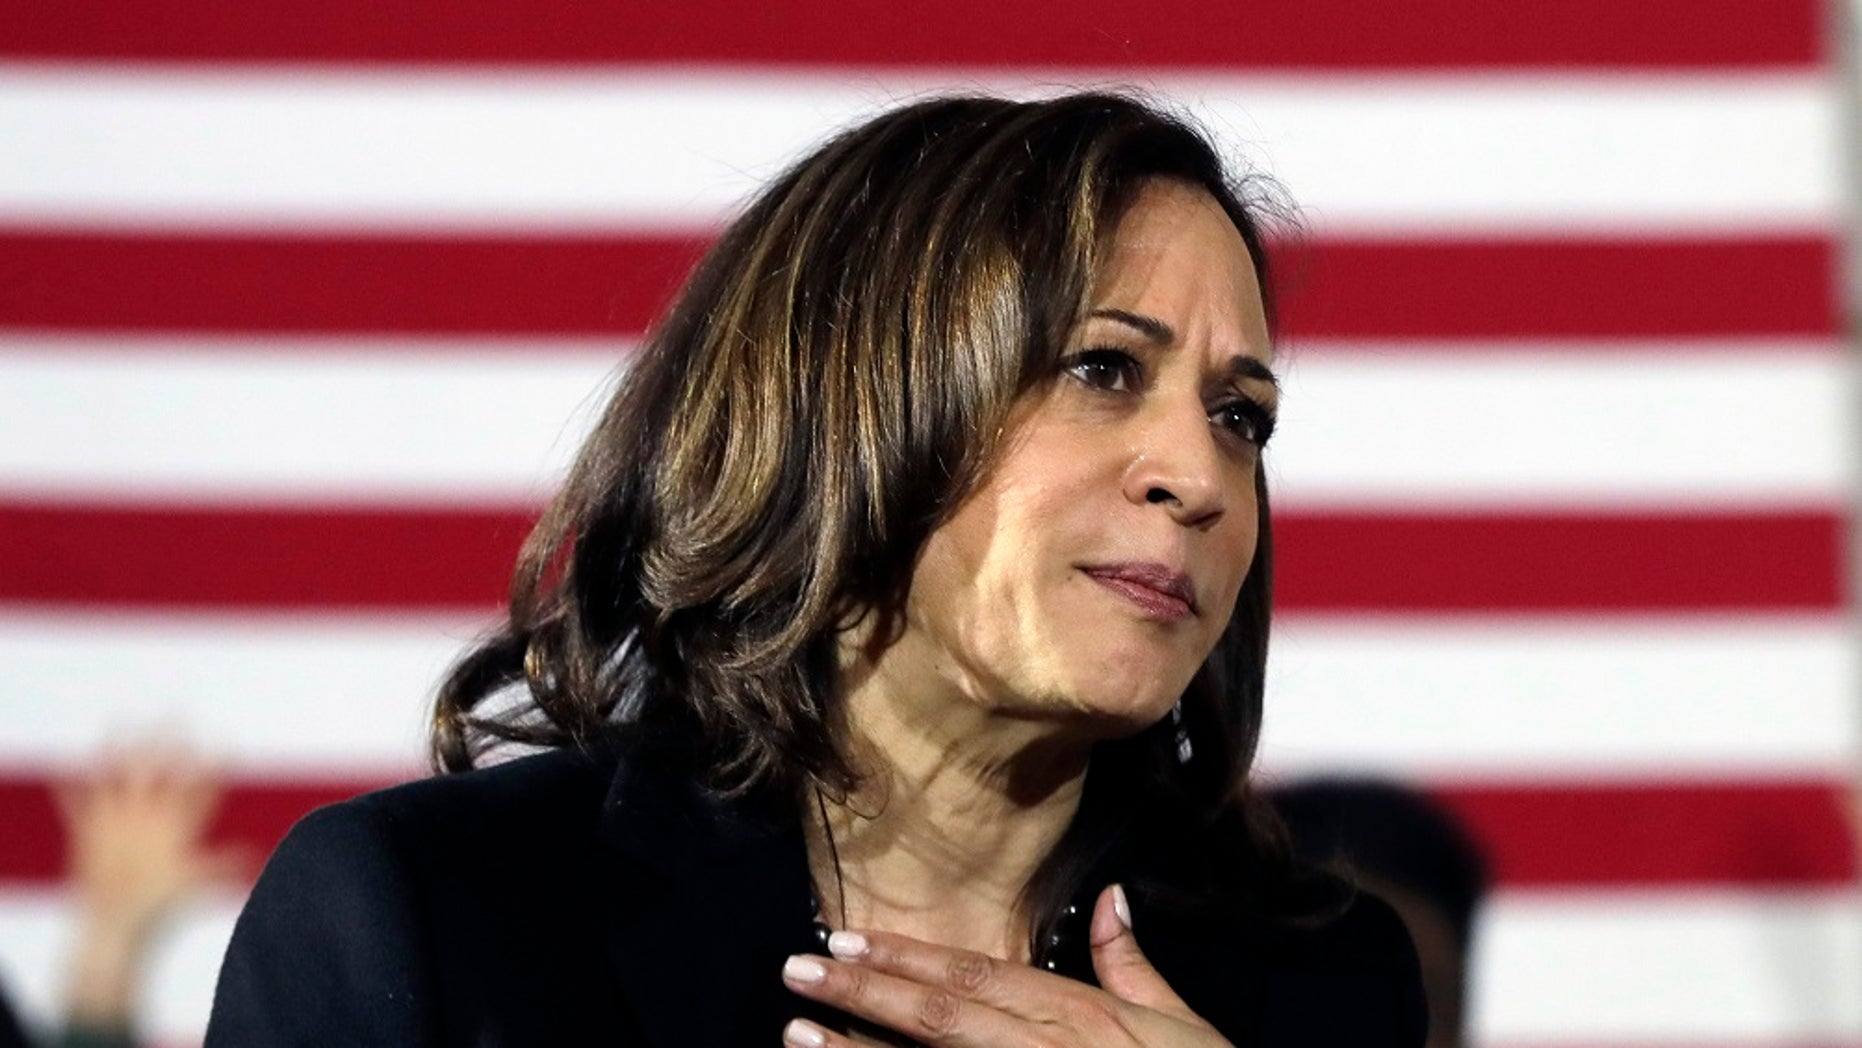 Democratic presidential candidate Sen. Kamala Harris, D-Calif., listens to a question at a campaign event in Portsmouth, N.H., last month. (AP Photo/Elise Amendola)